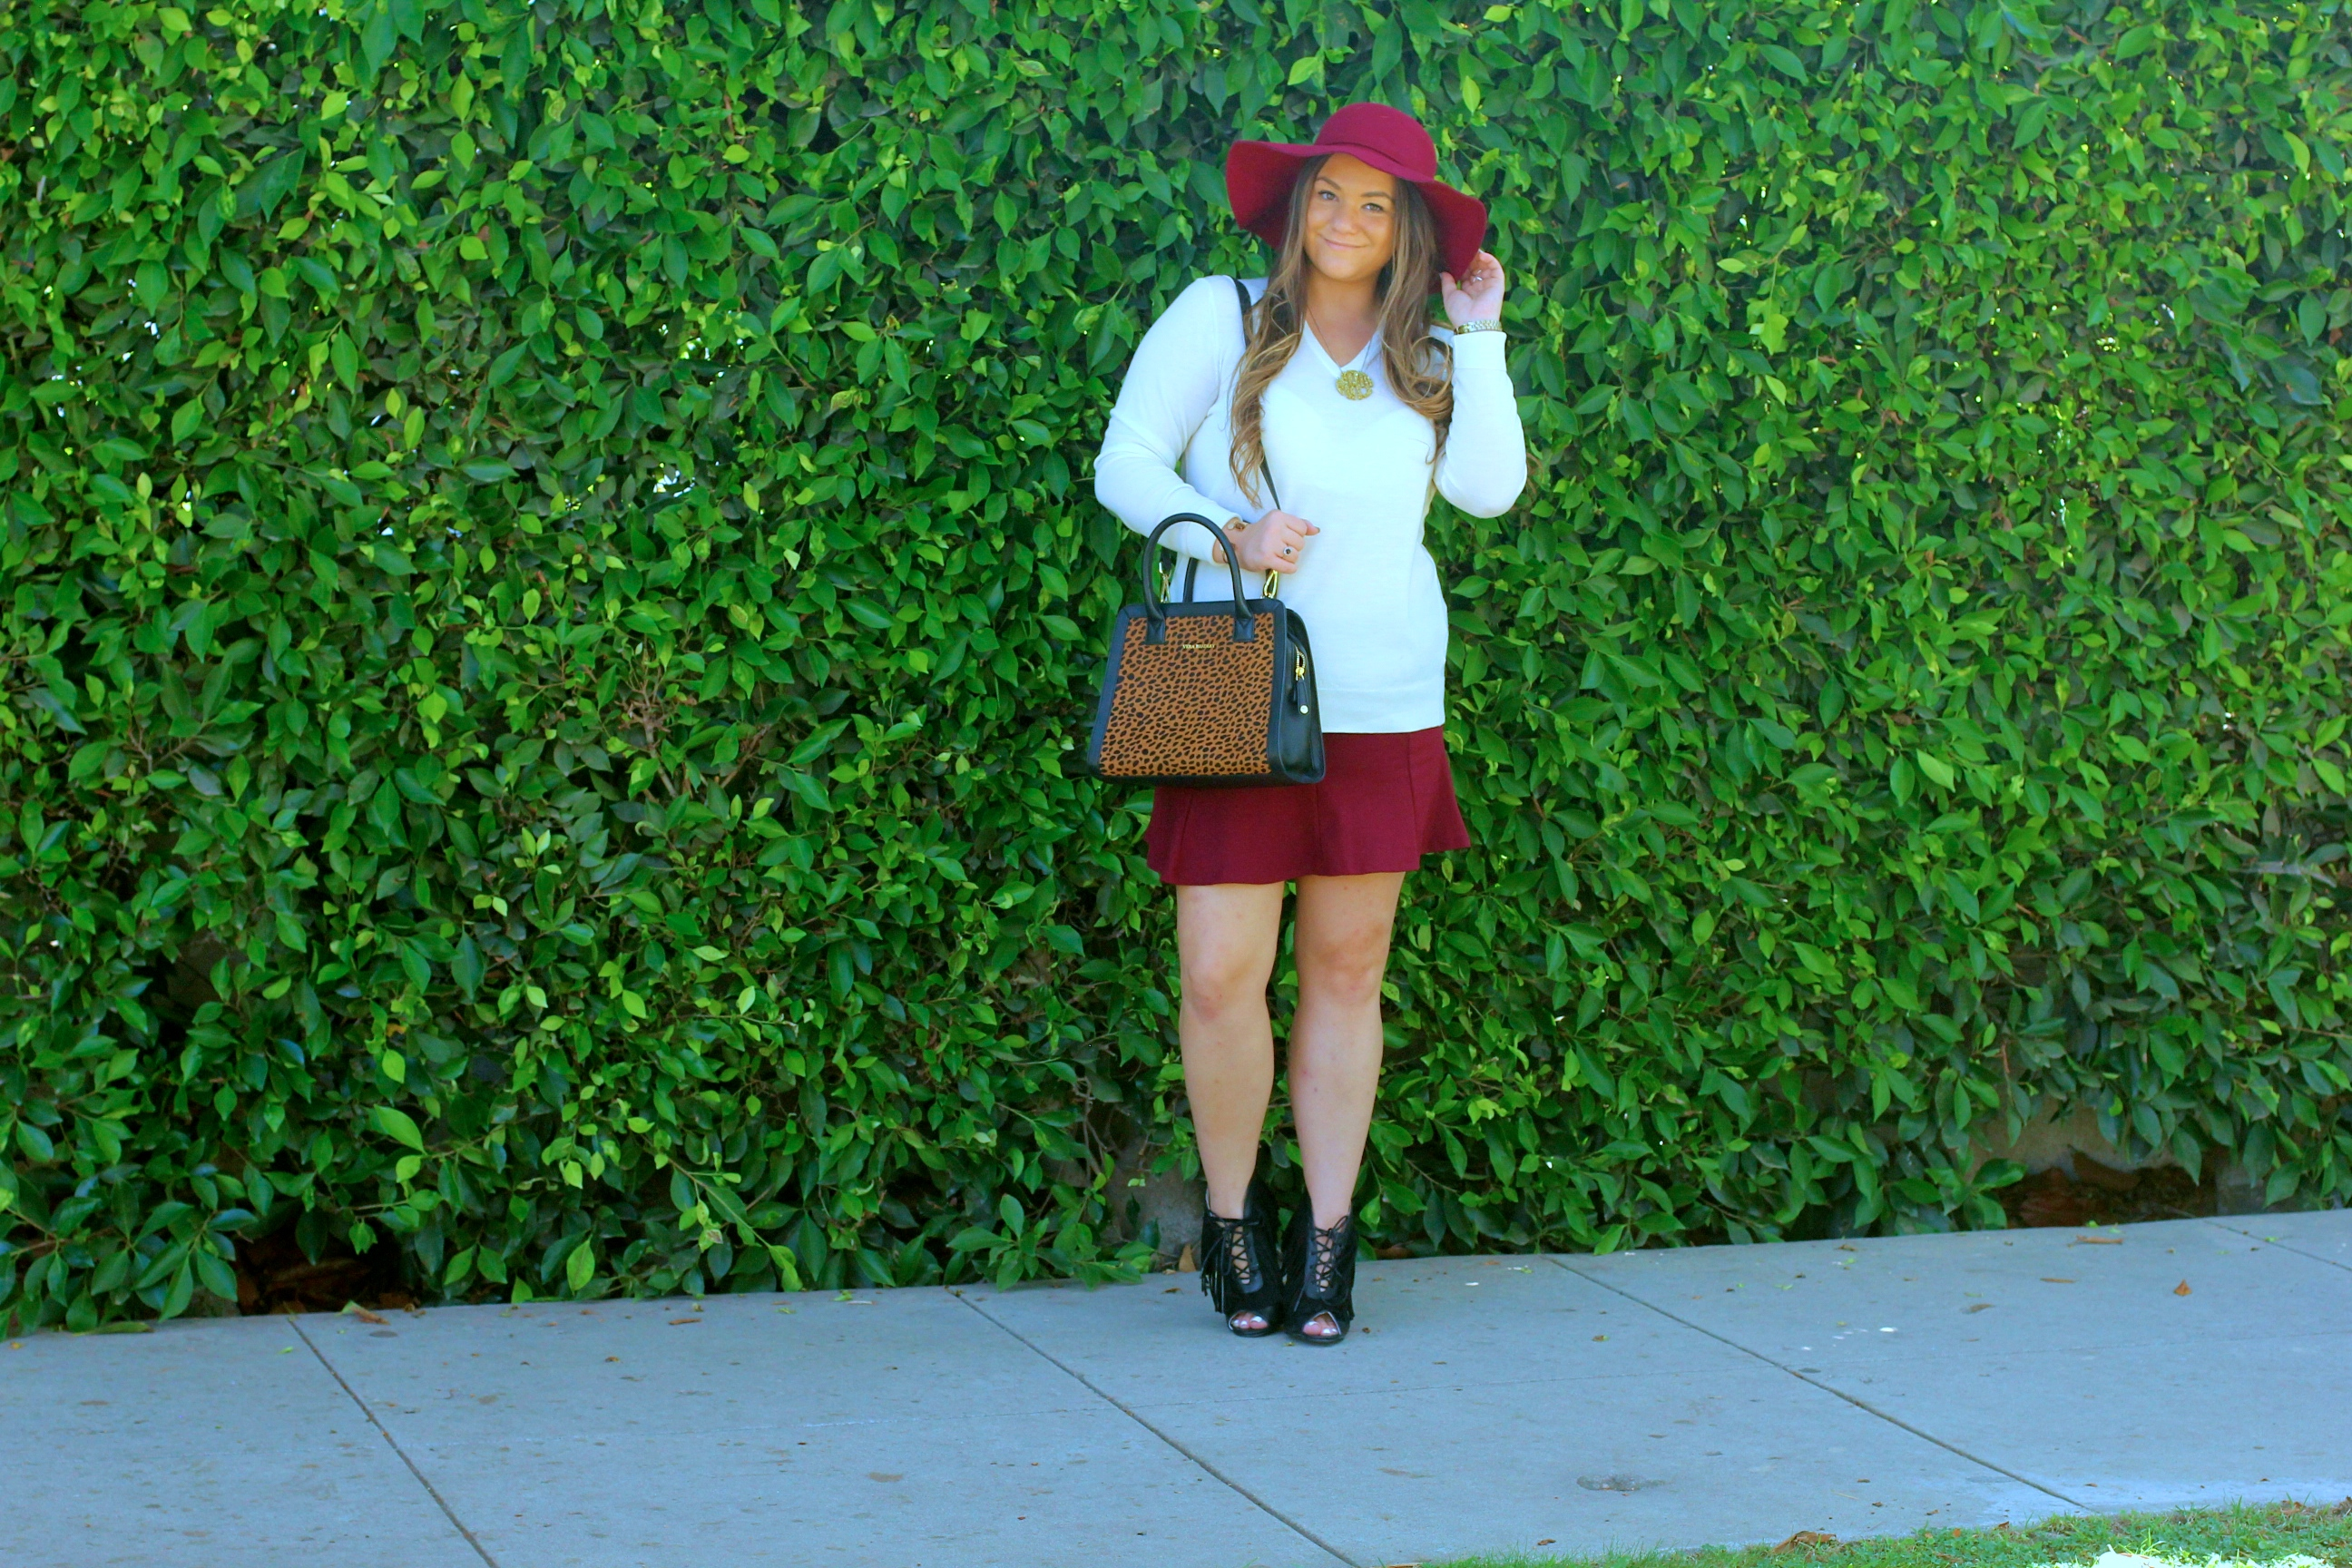 missyonmadison, melissa tierney, maroon skirt, maroon skater skirt, uniqlo, uniqlo sweater, white sweater, nyla booties, black peep toe booties, nyla peep toe booties, vera bradley, leopard satchel, leopard handbag, vera bradley leopard satchel, baublebar necklace, monogram necklace, maroon floppy hat, thanksgiving style, fall style, fall fashion,